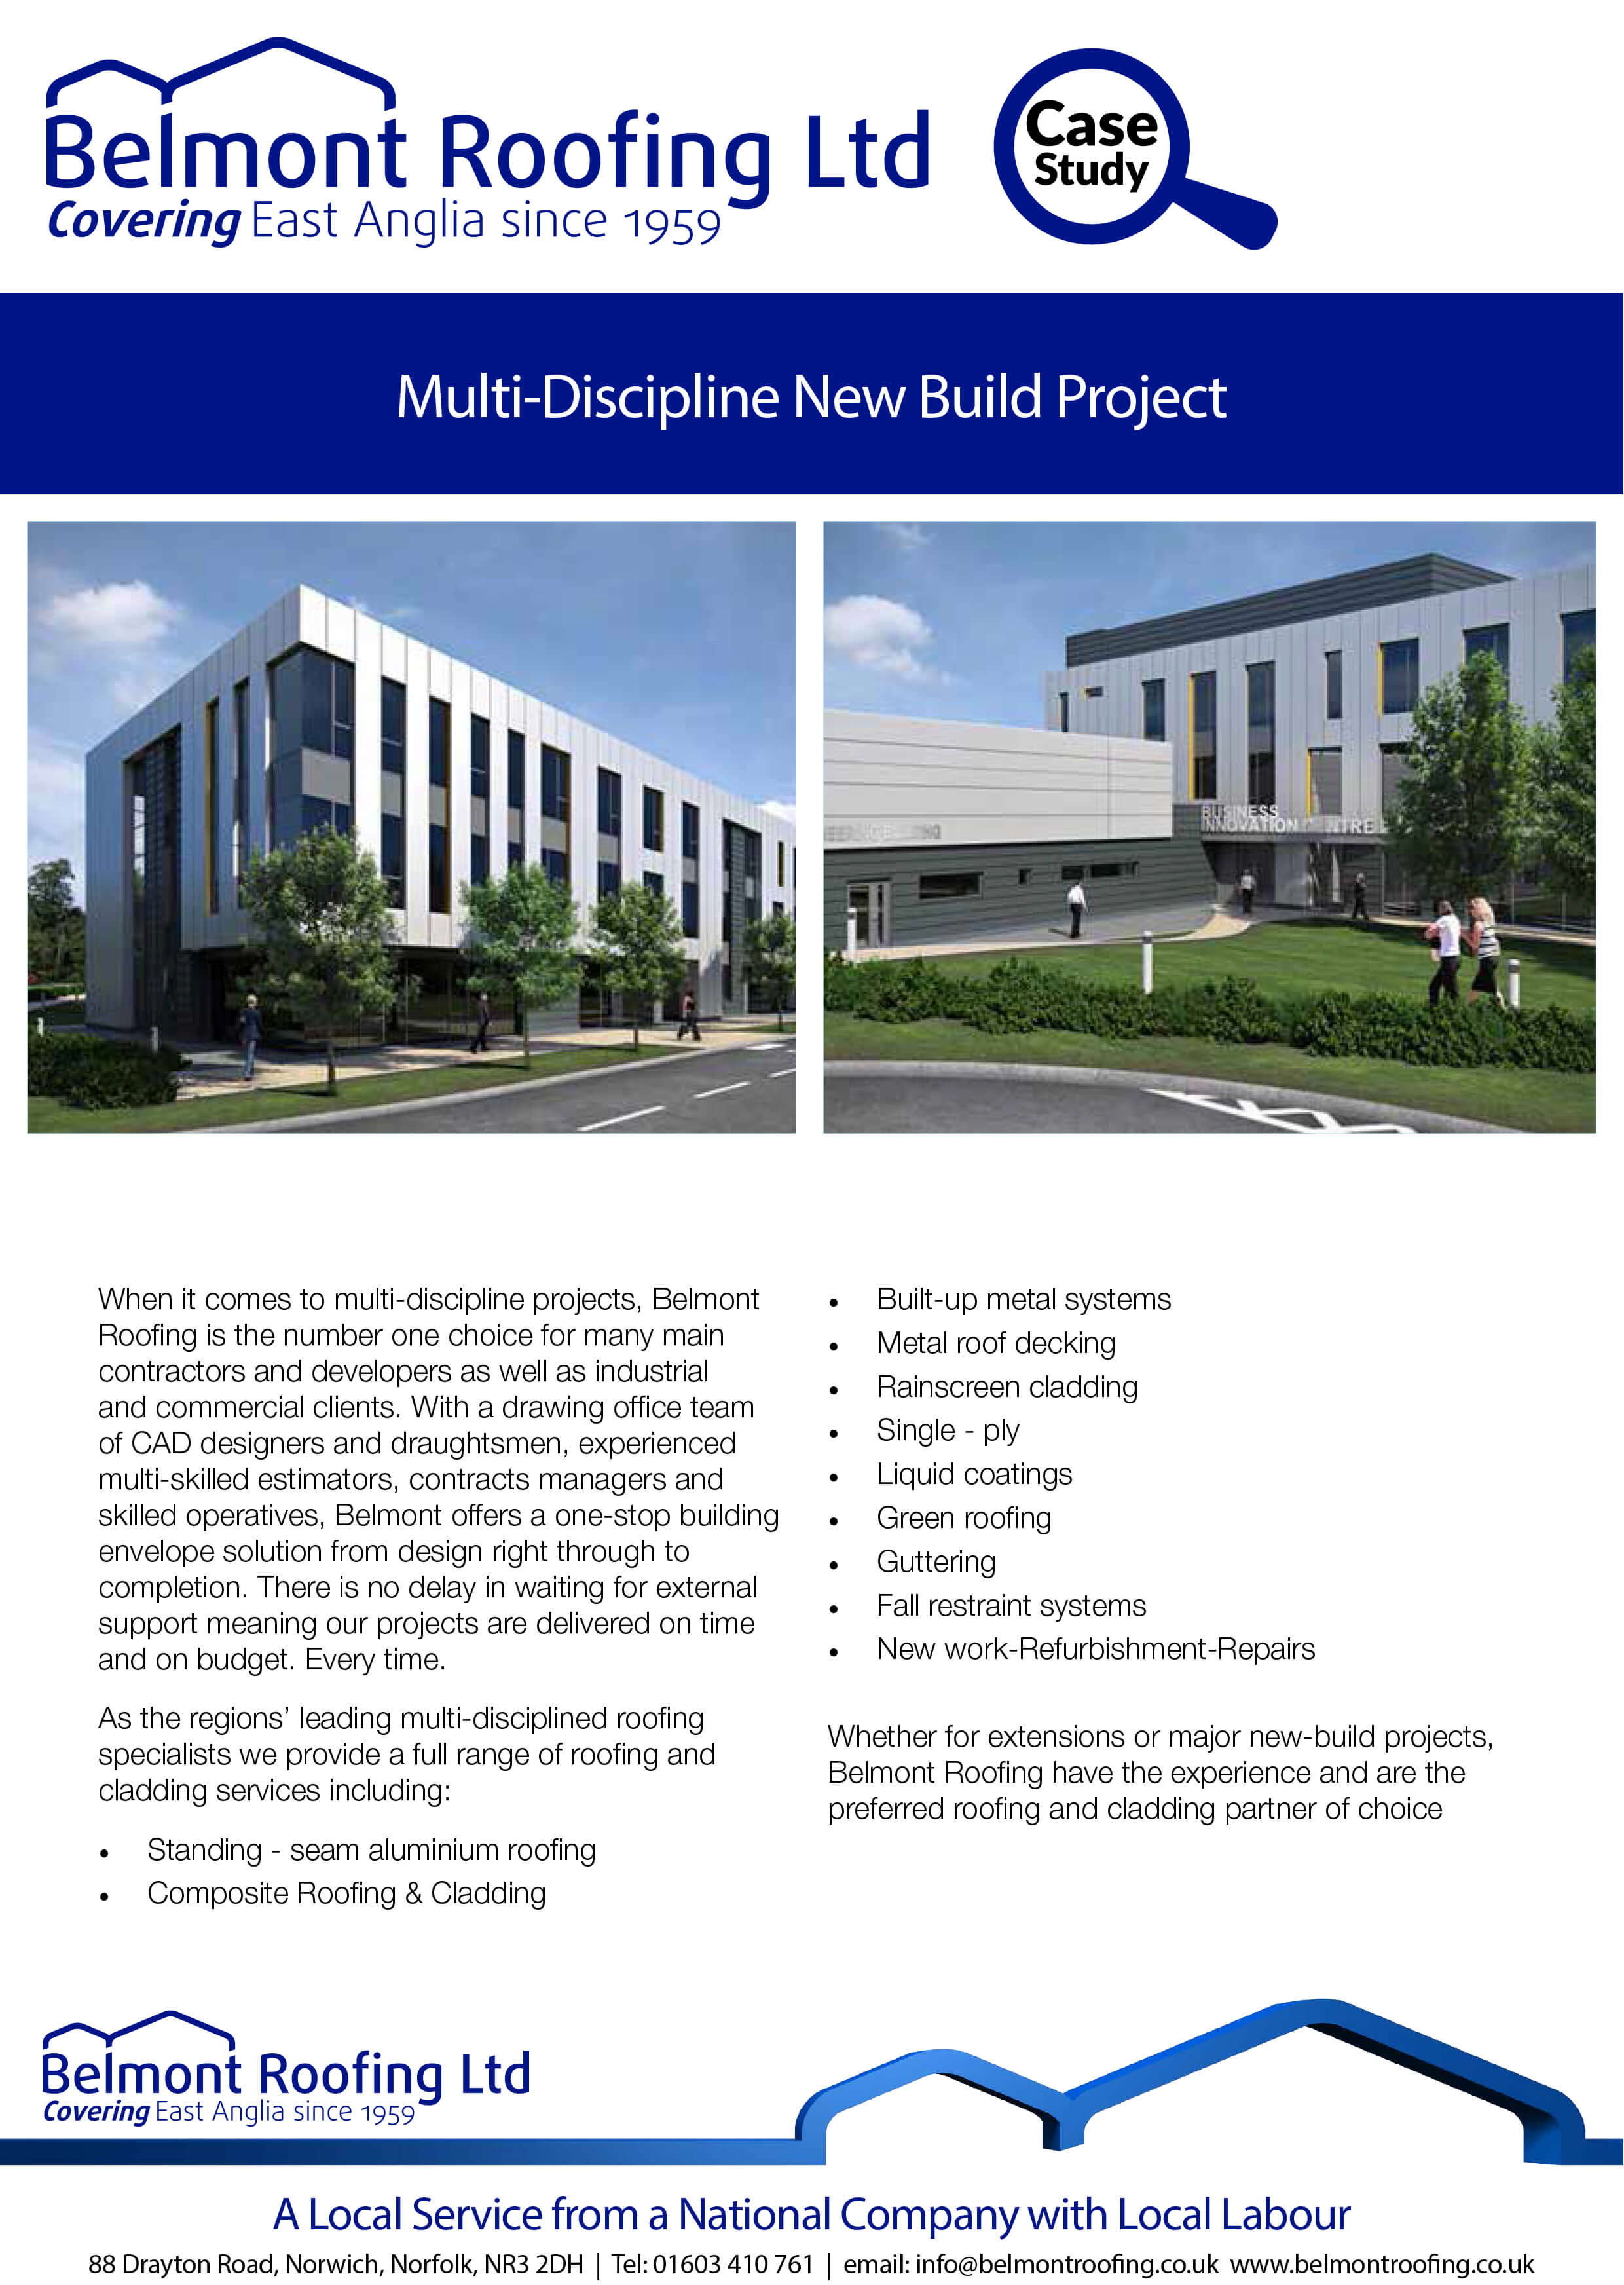 Multi-Discipline New Build Project